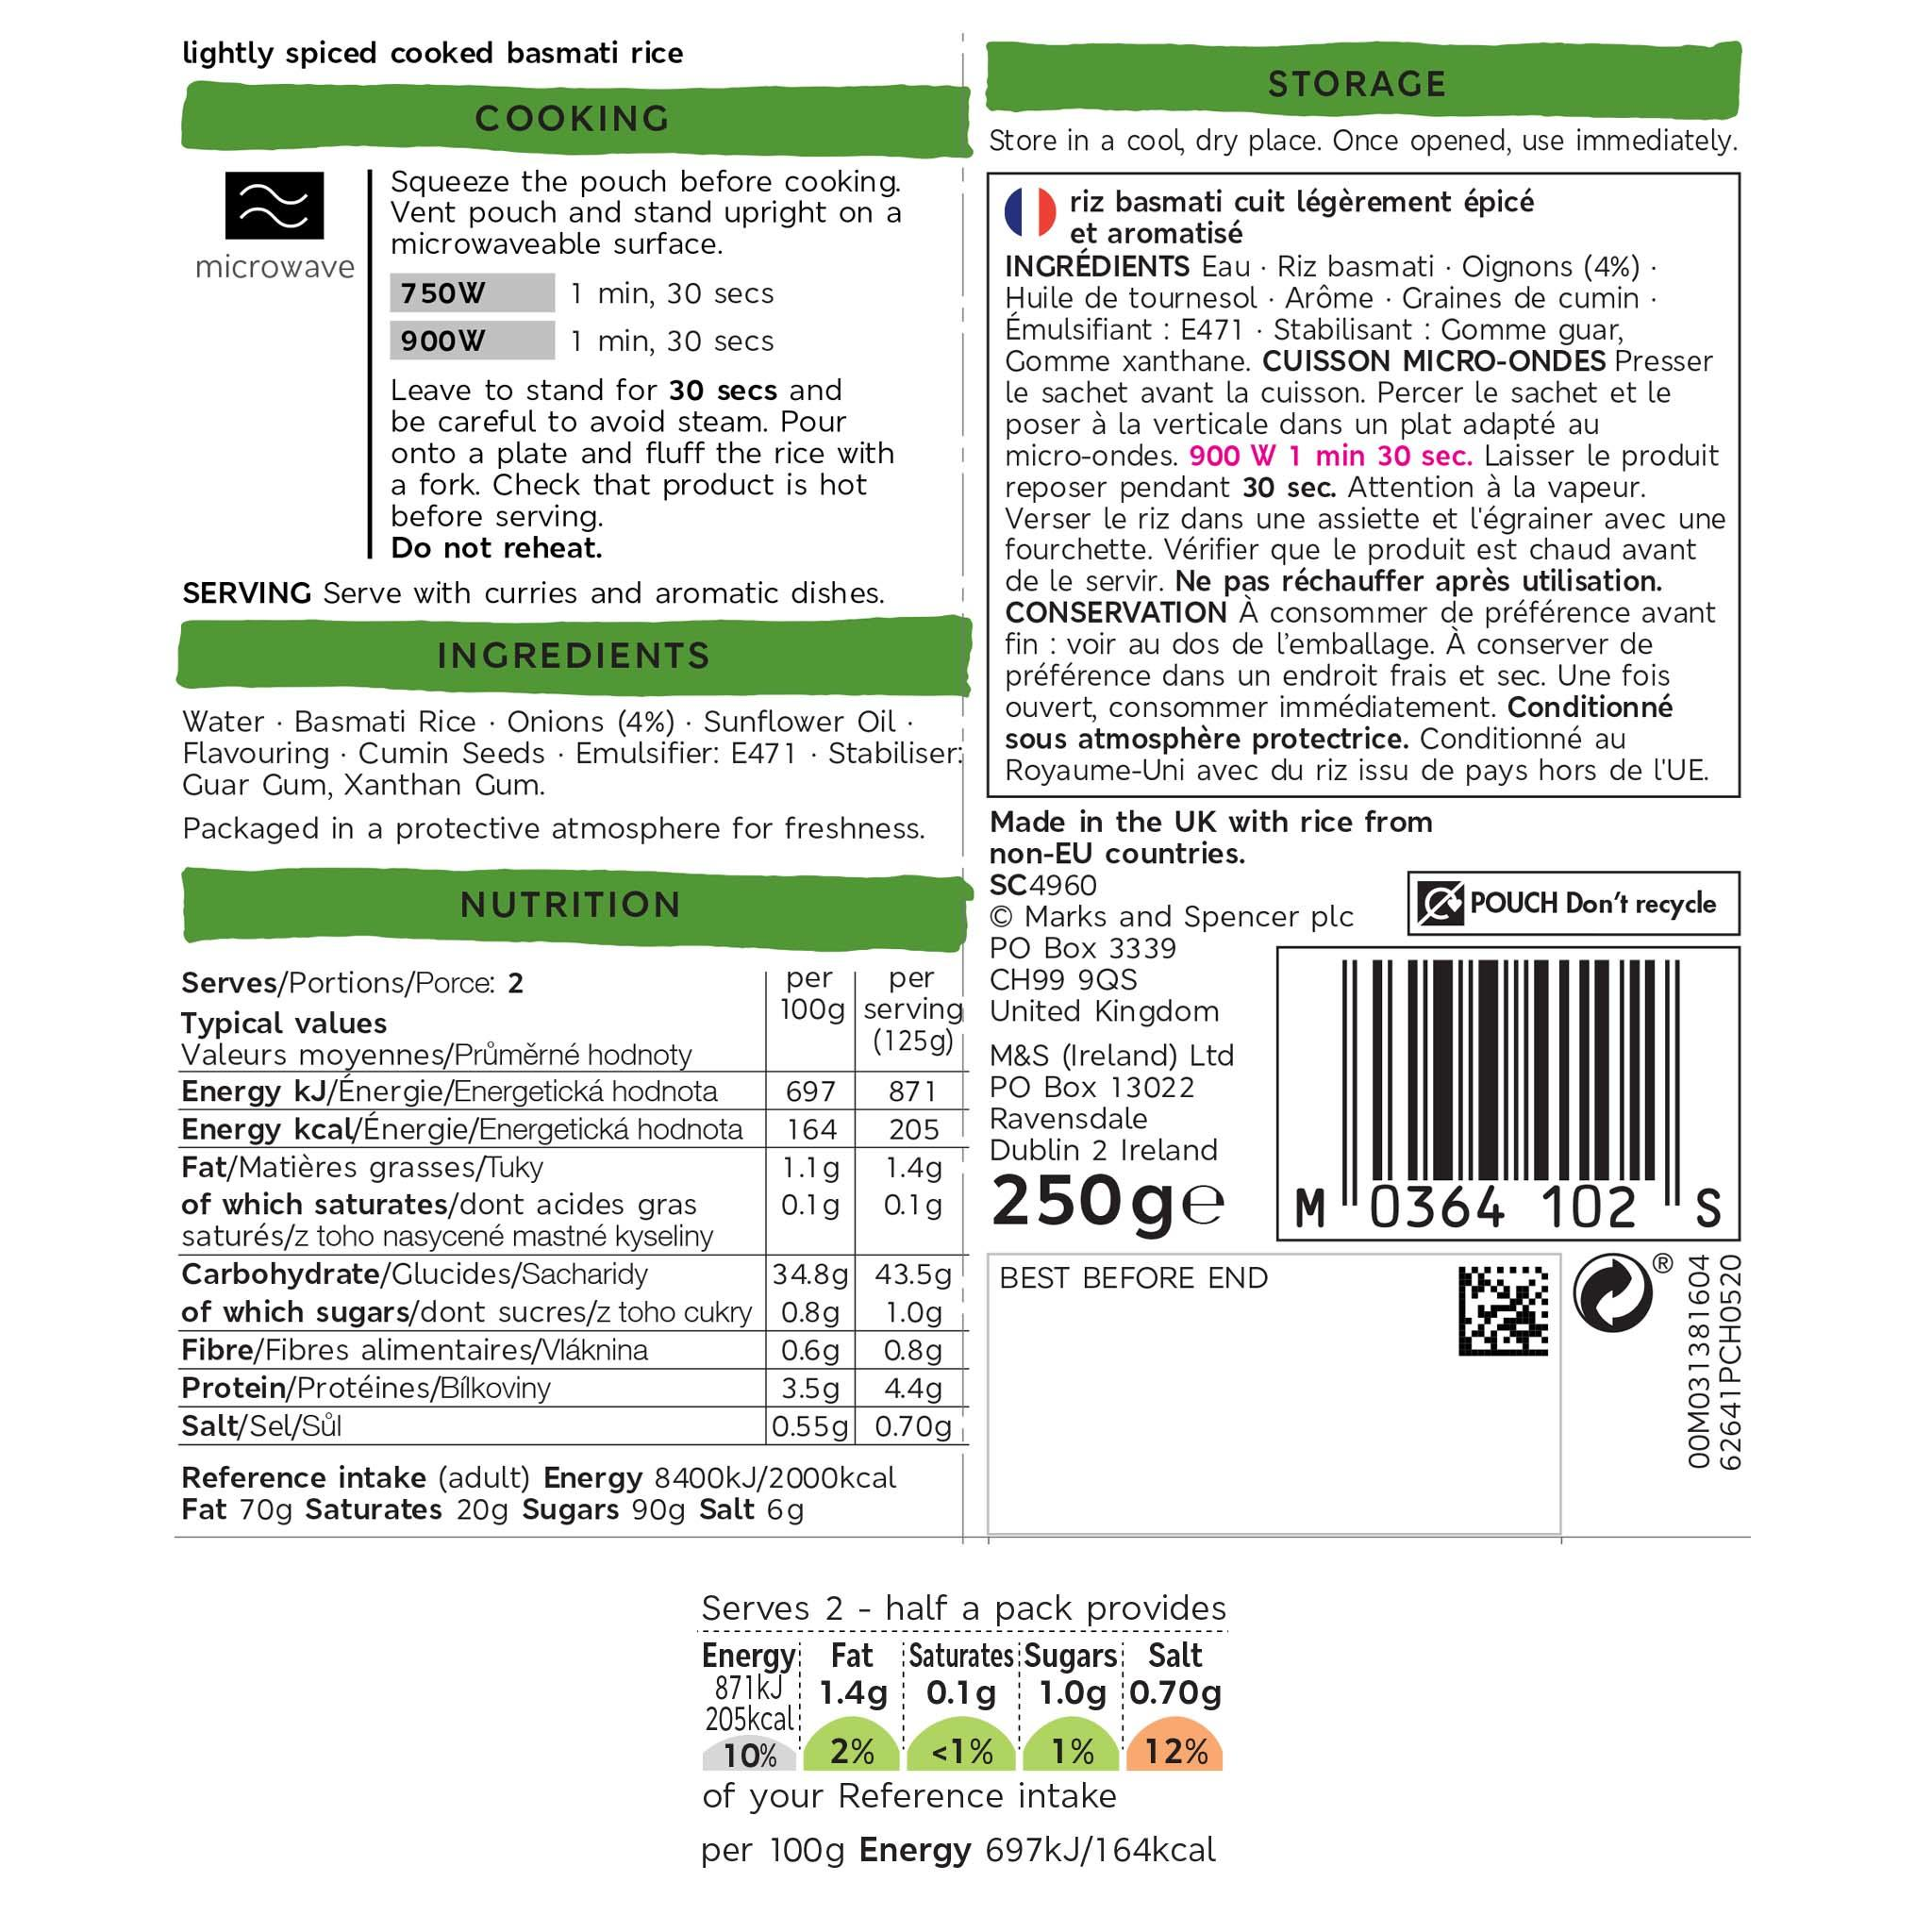 Microwaveable Pilau Rice 250g Label